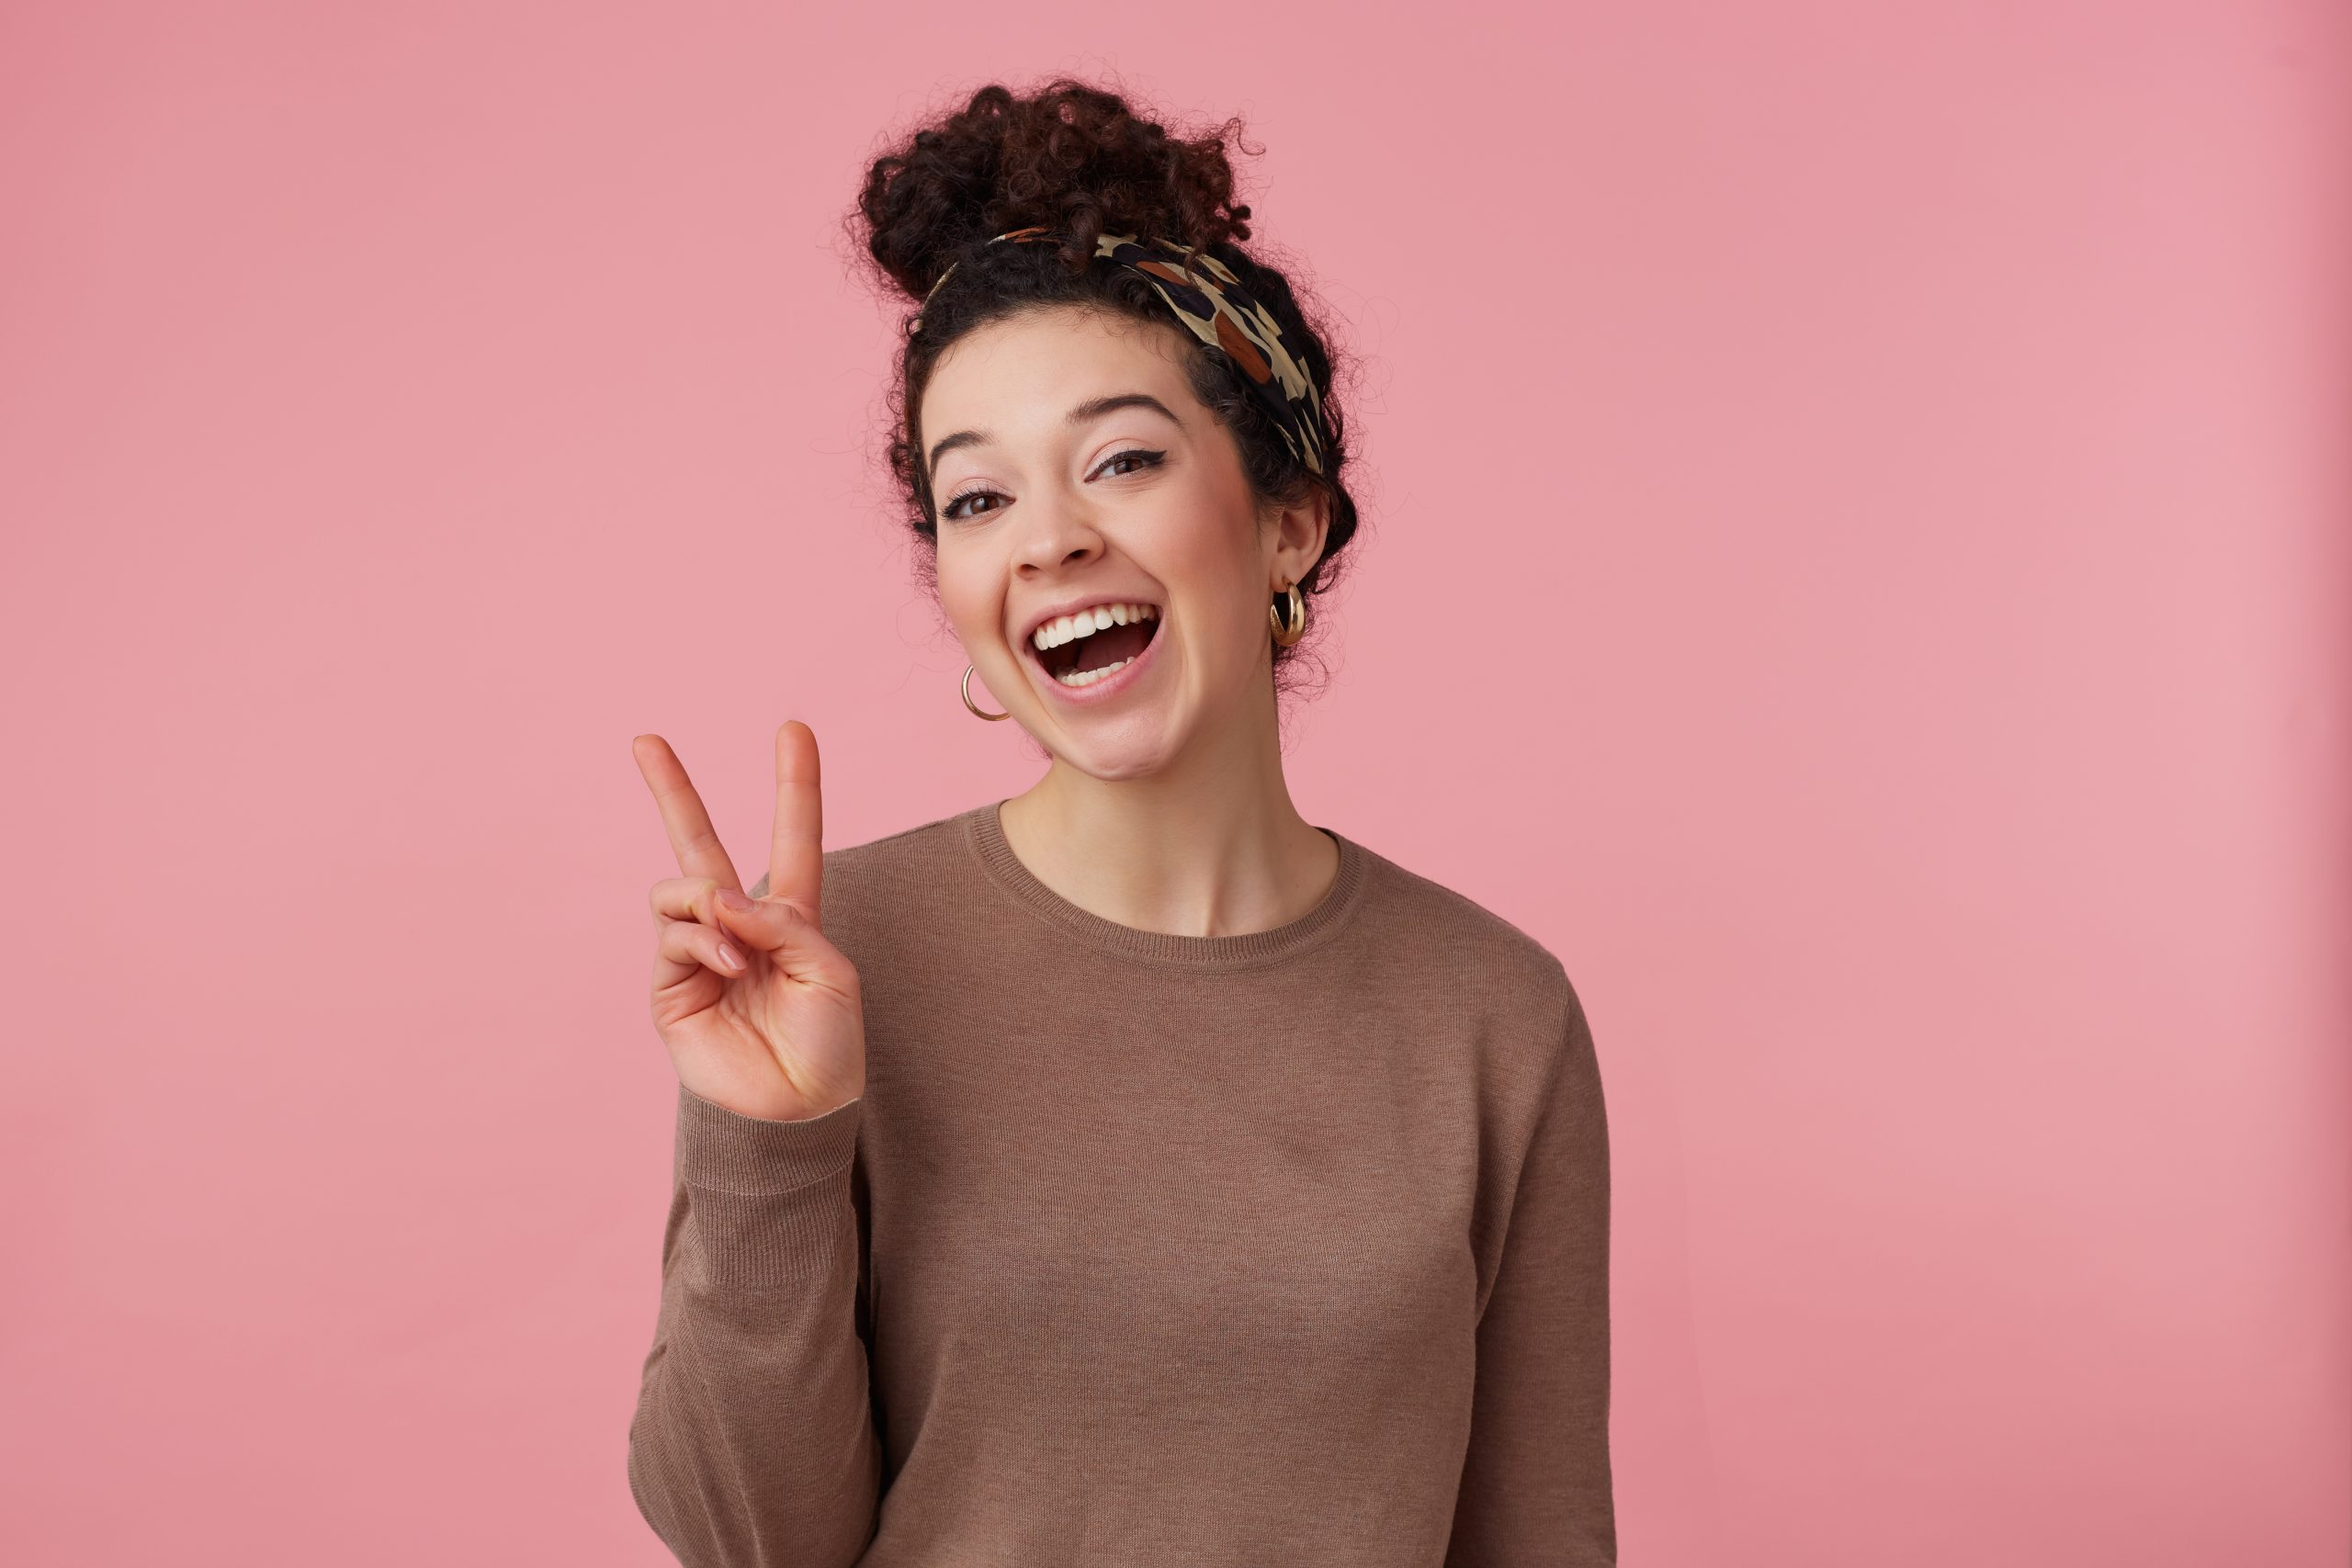 Cheerful woman, beautiful girl with dark curly hair bun. Wearing headband, earrings and brown sweater. Has make up. Showing peace sign. Watching at the camera isolated over pastel pink background